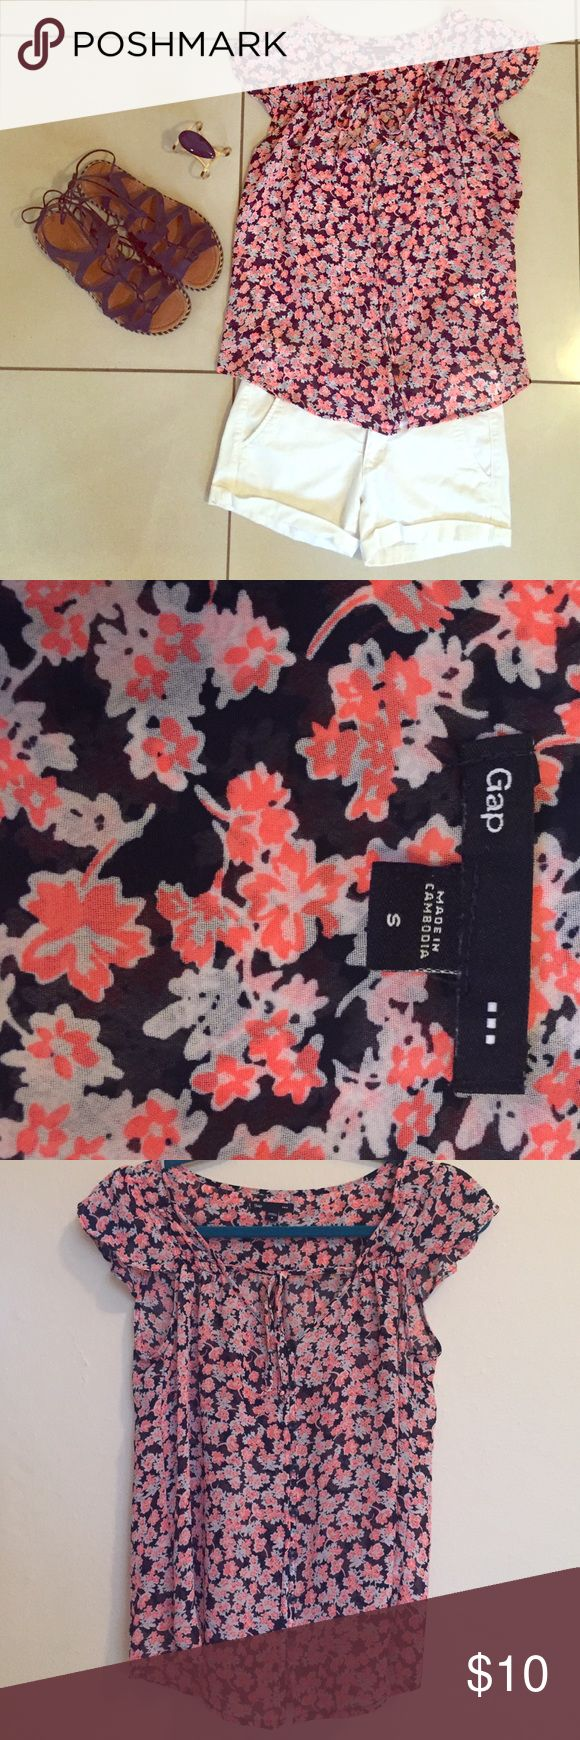 SALEGap Floral Blouse Size S. Excellent condition. Perfect to wear with white shorts. Please feel free to make an offer or ask any question you may have. GAP Tops Blouses